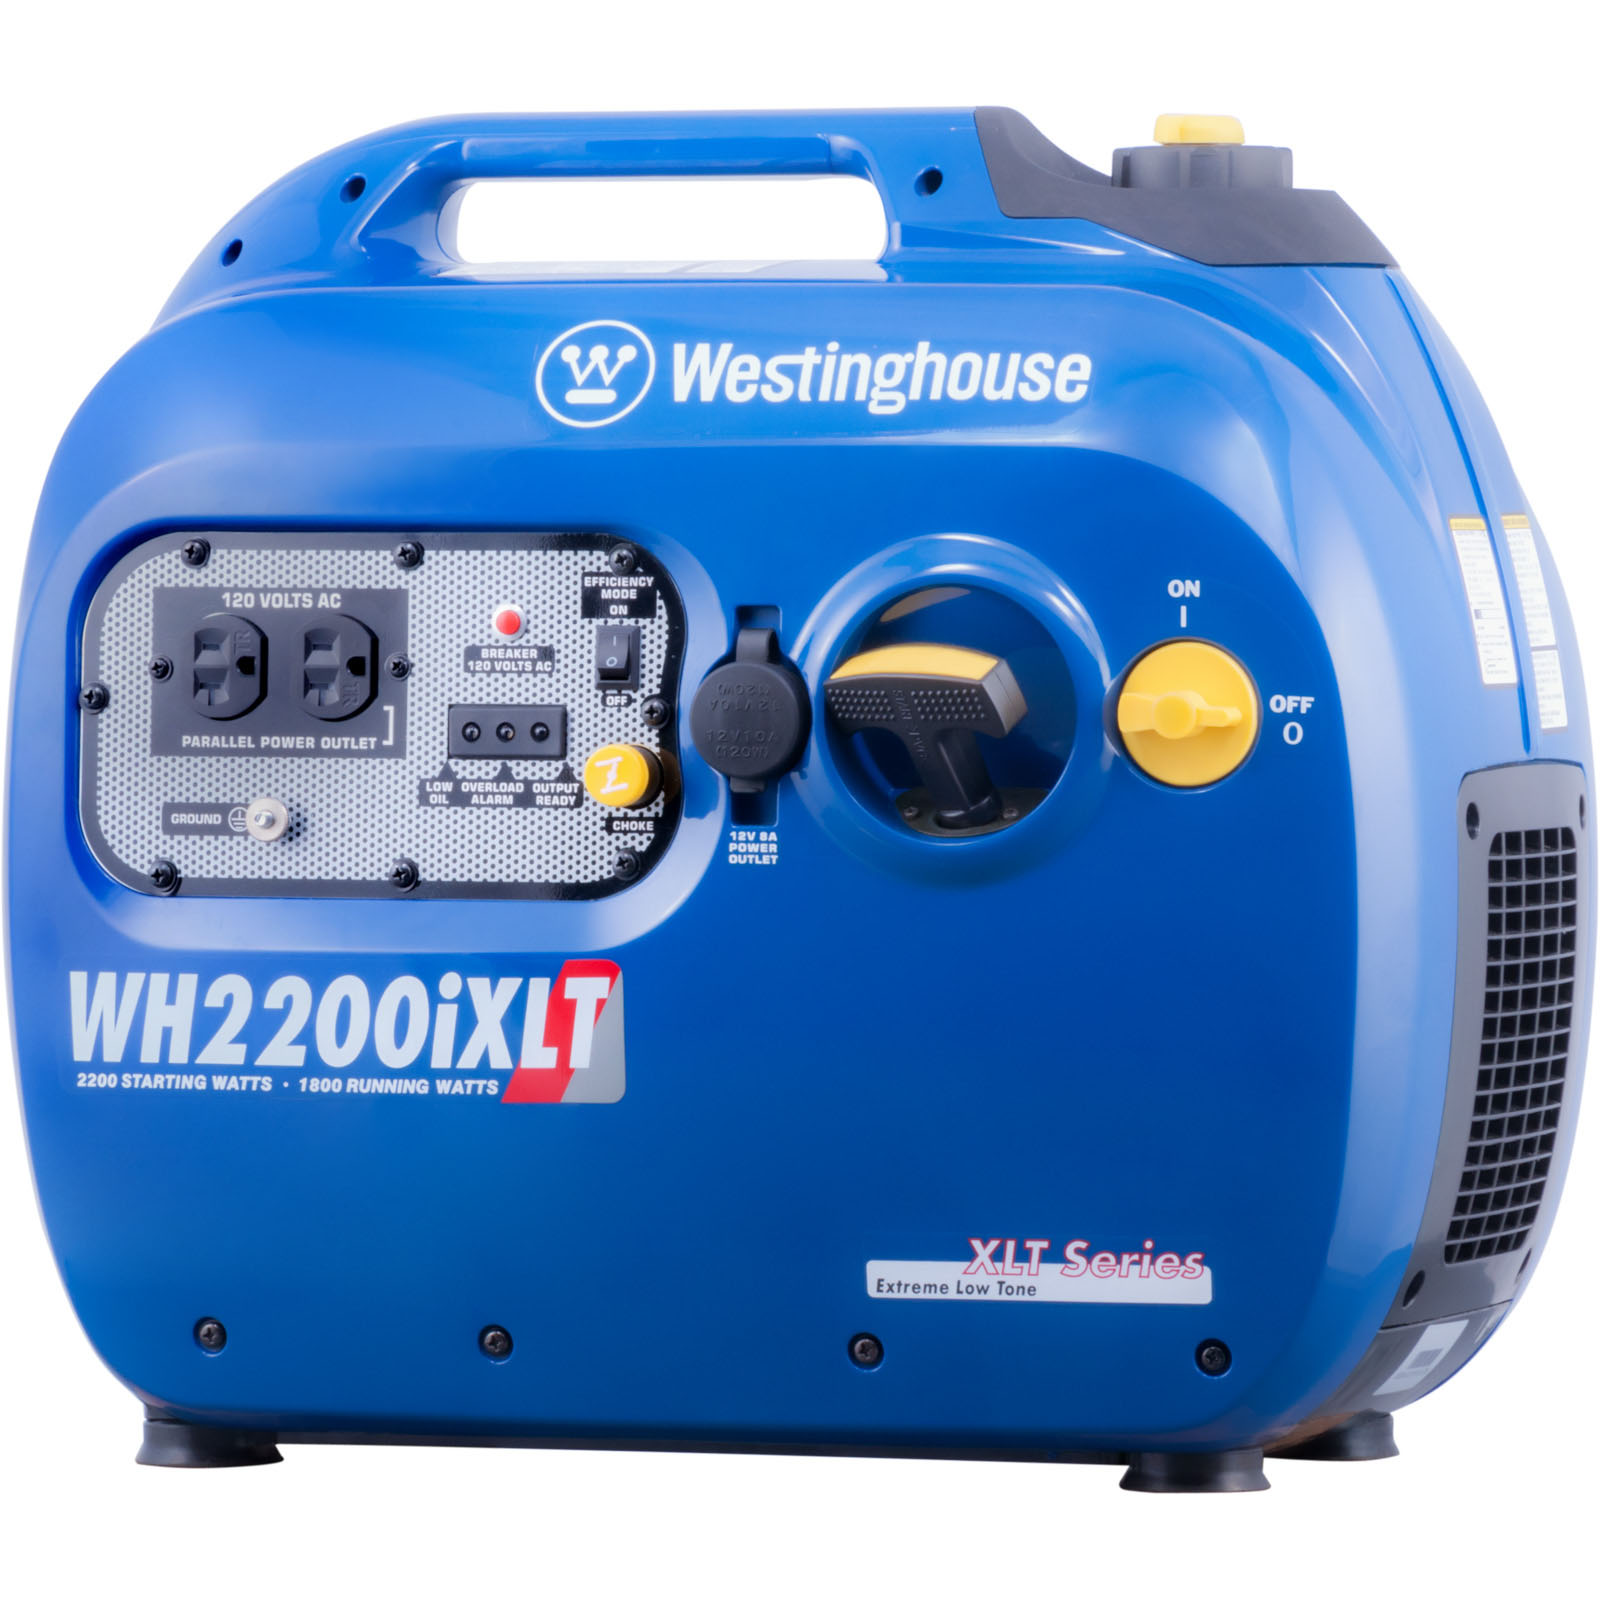 Westinghouse WH2200iXLT Gas Powered Portable Inverter Generator